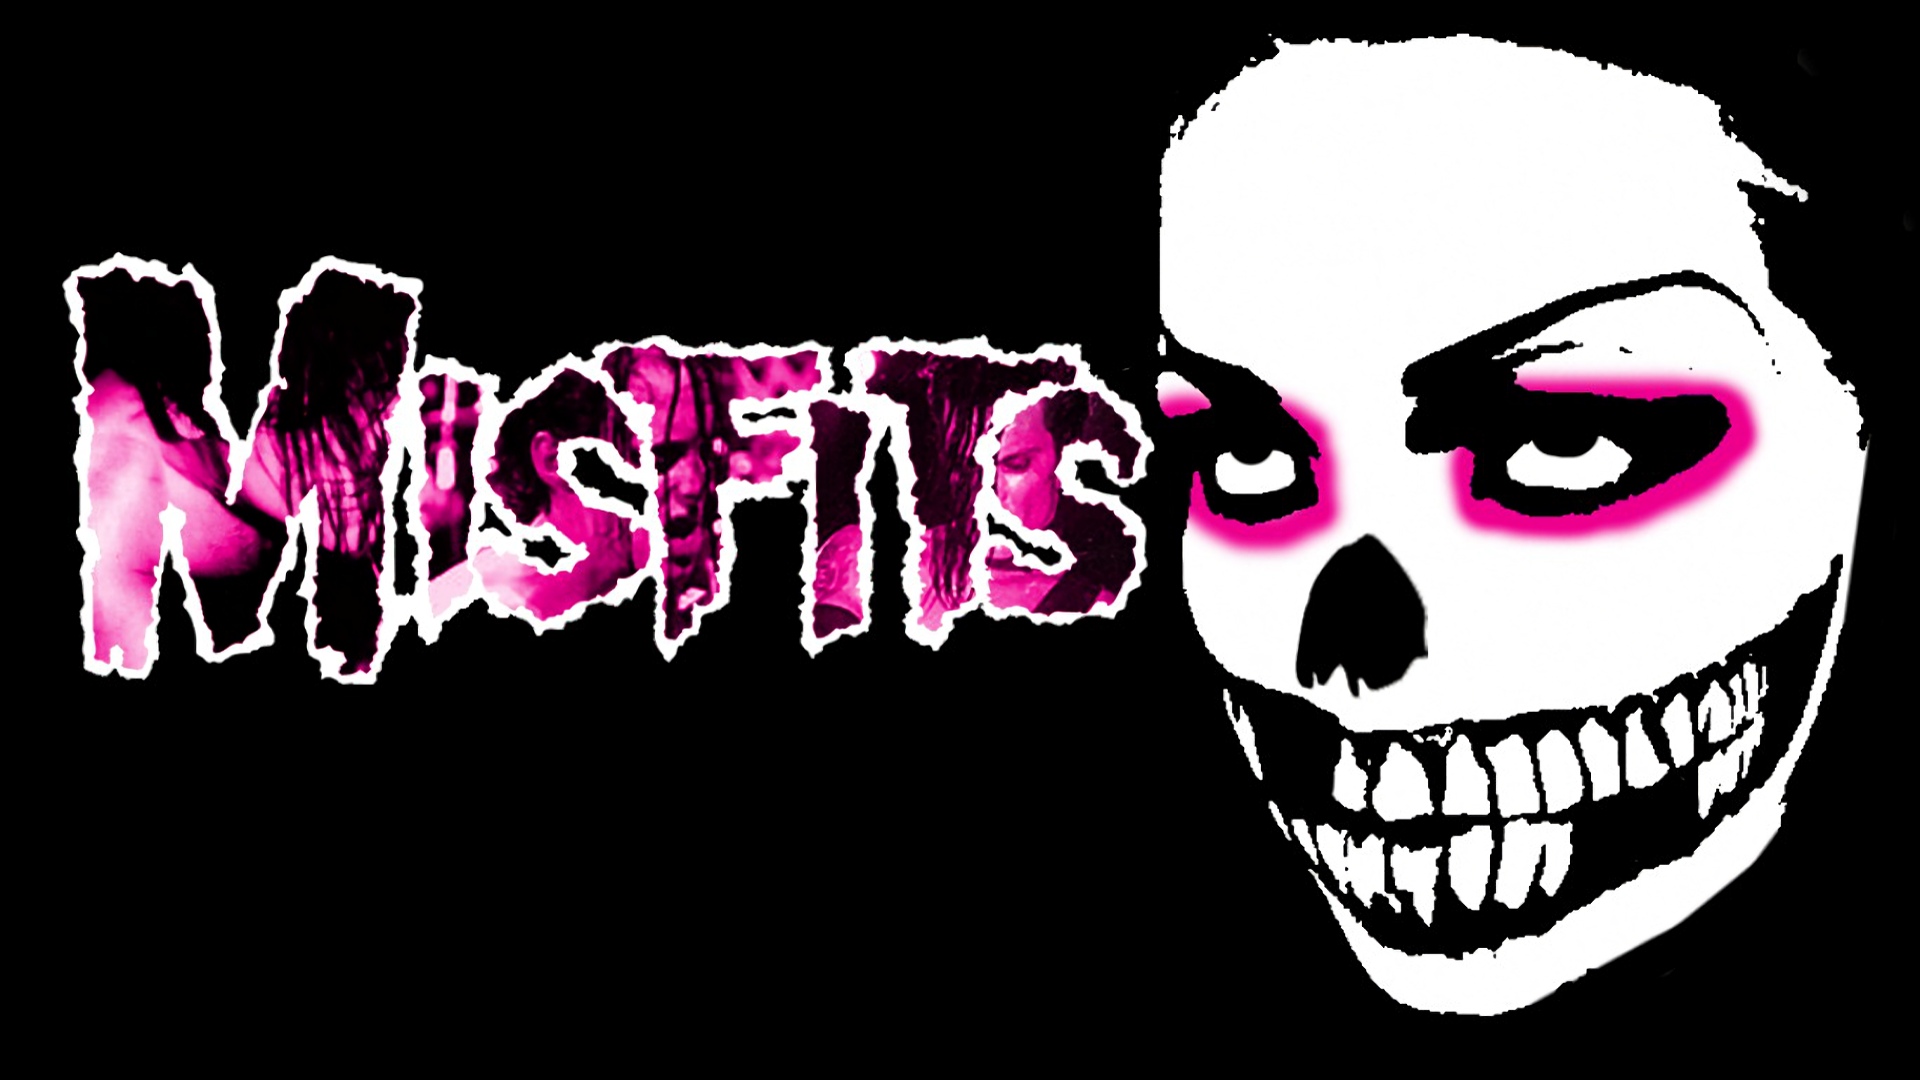 the misfits hd wallpaper background image 1920x1080